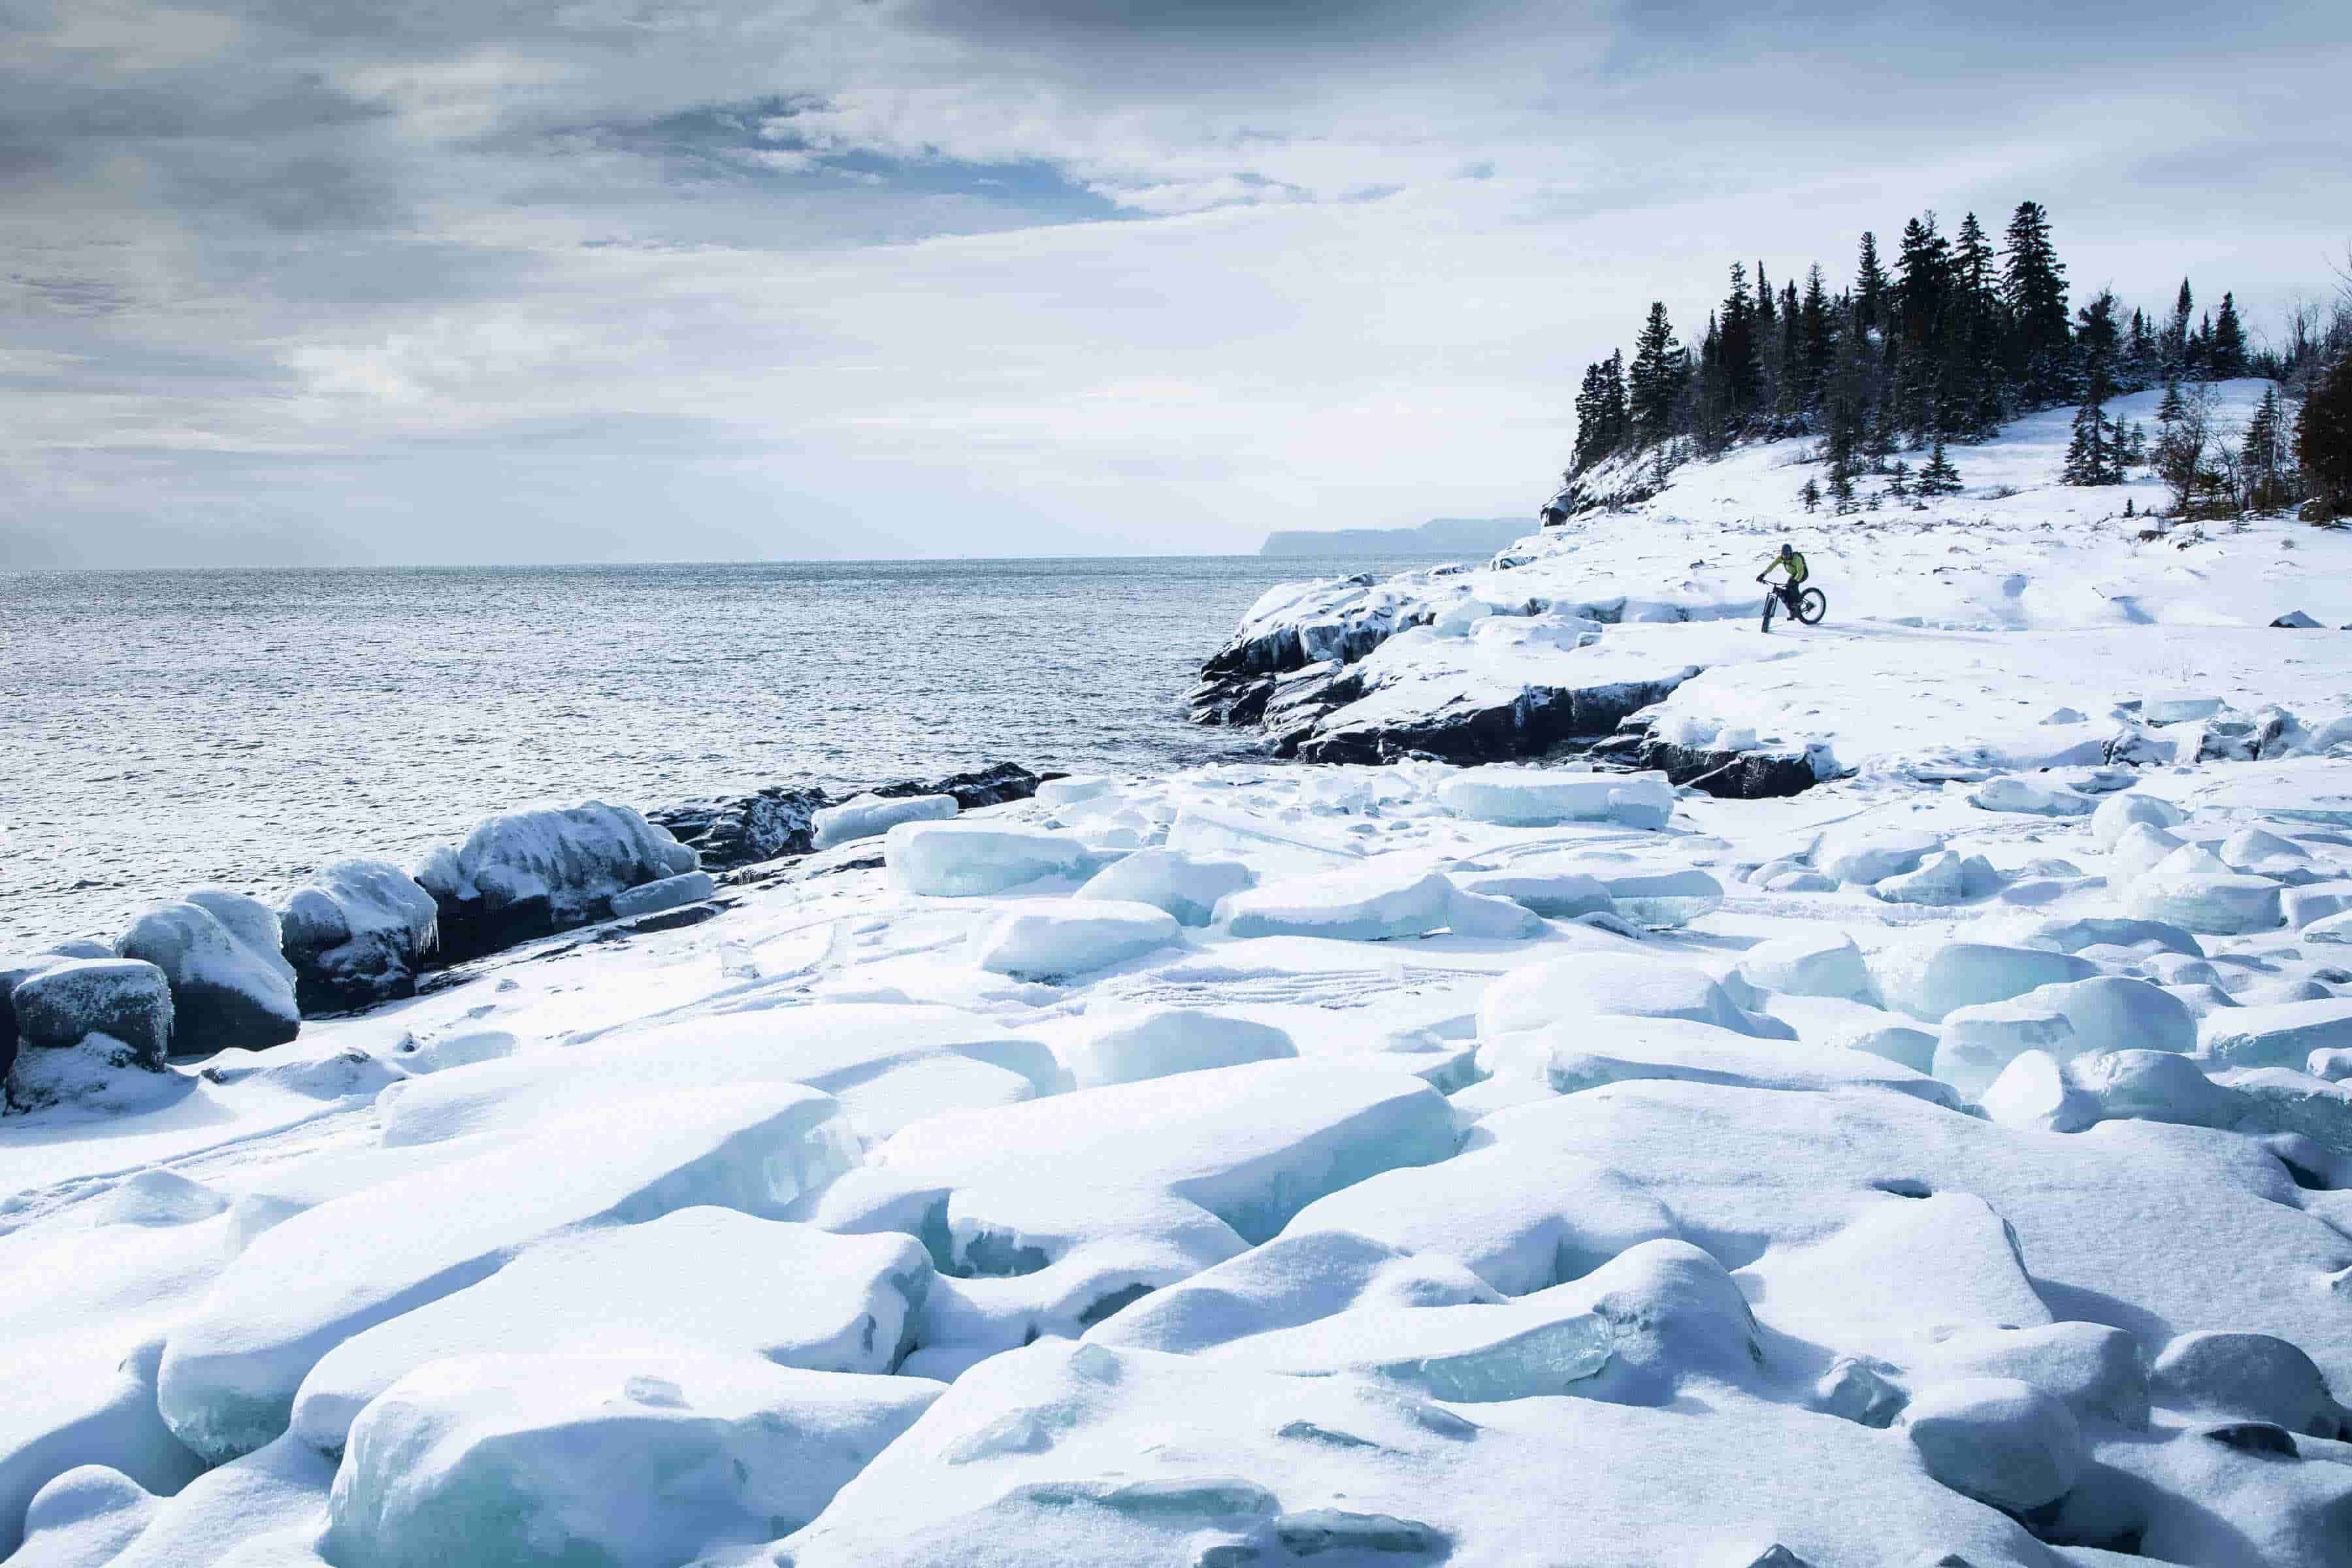 Icy shoreline covered in snow with fat bike rider in the distance